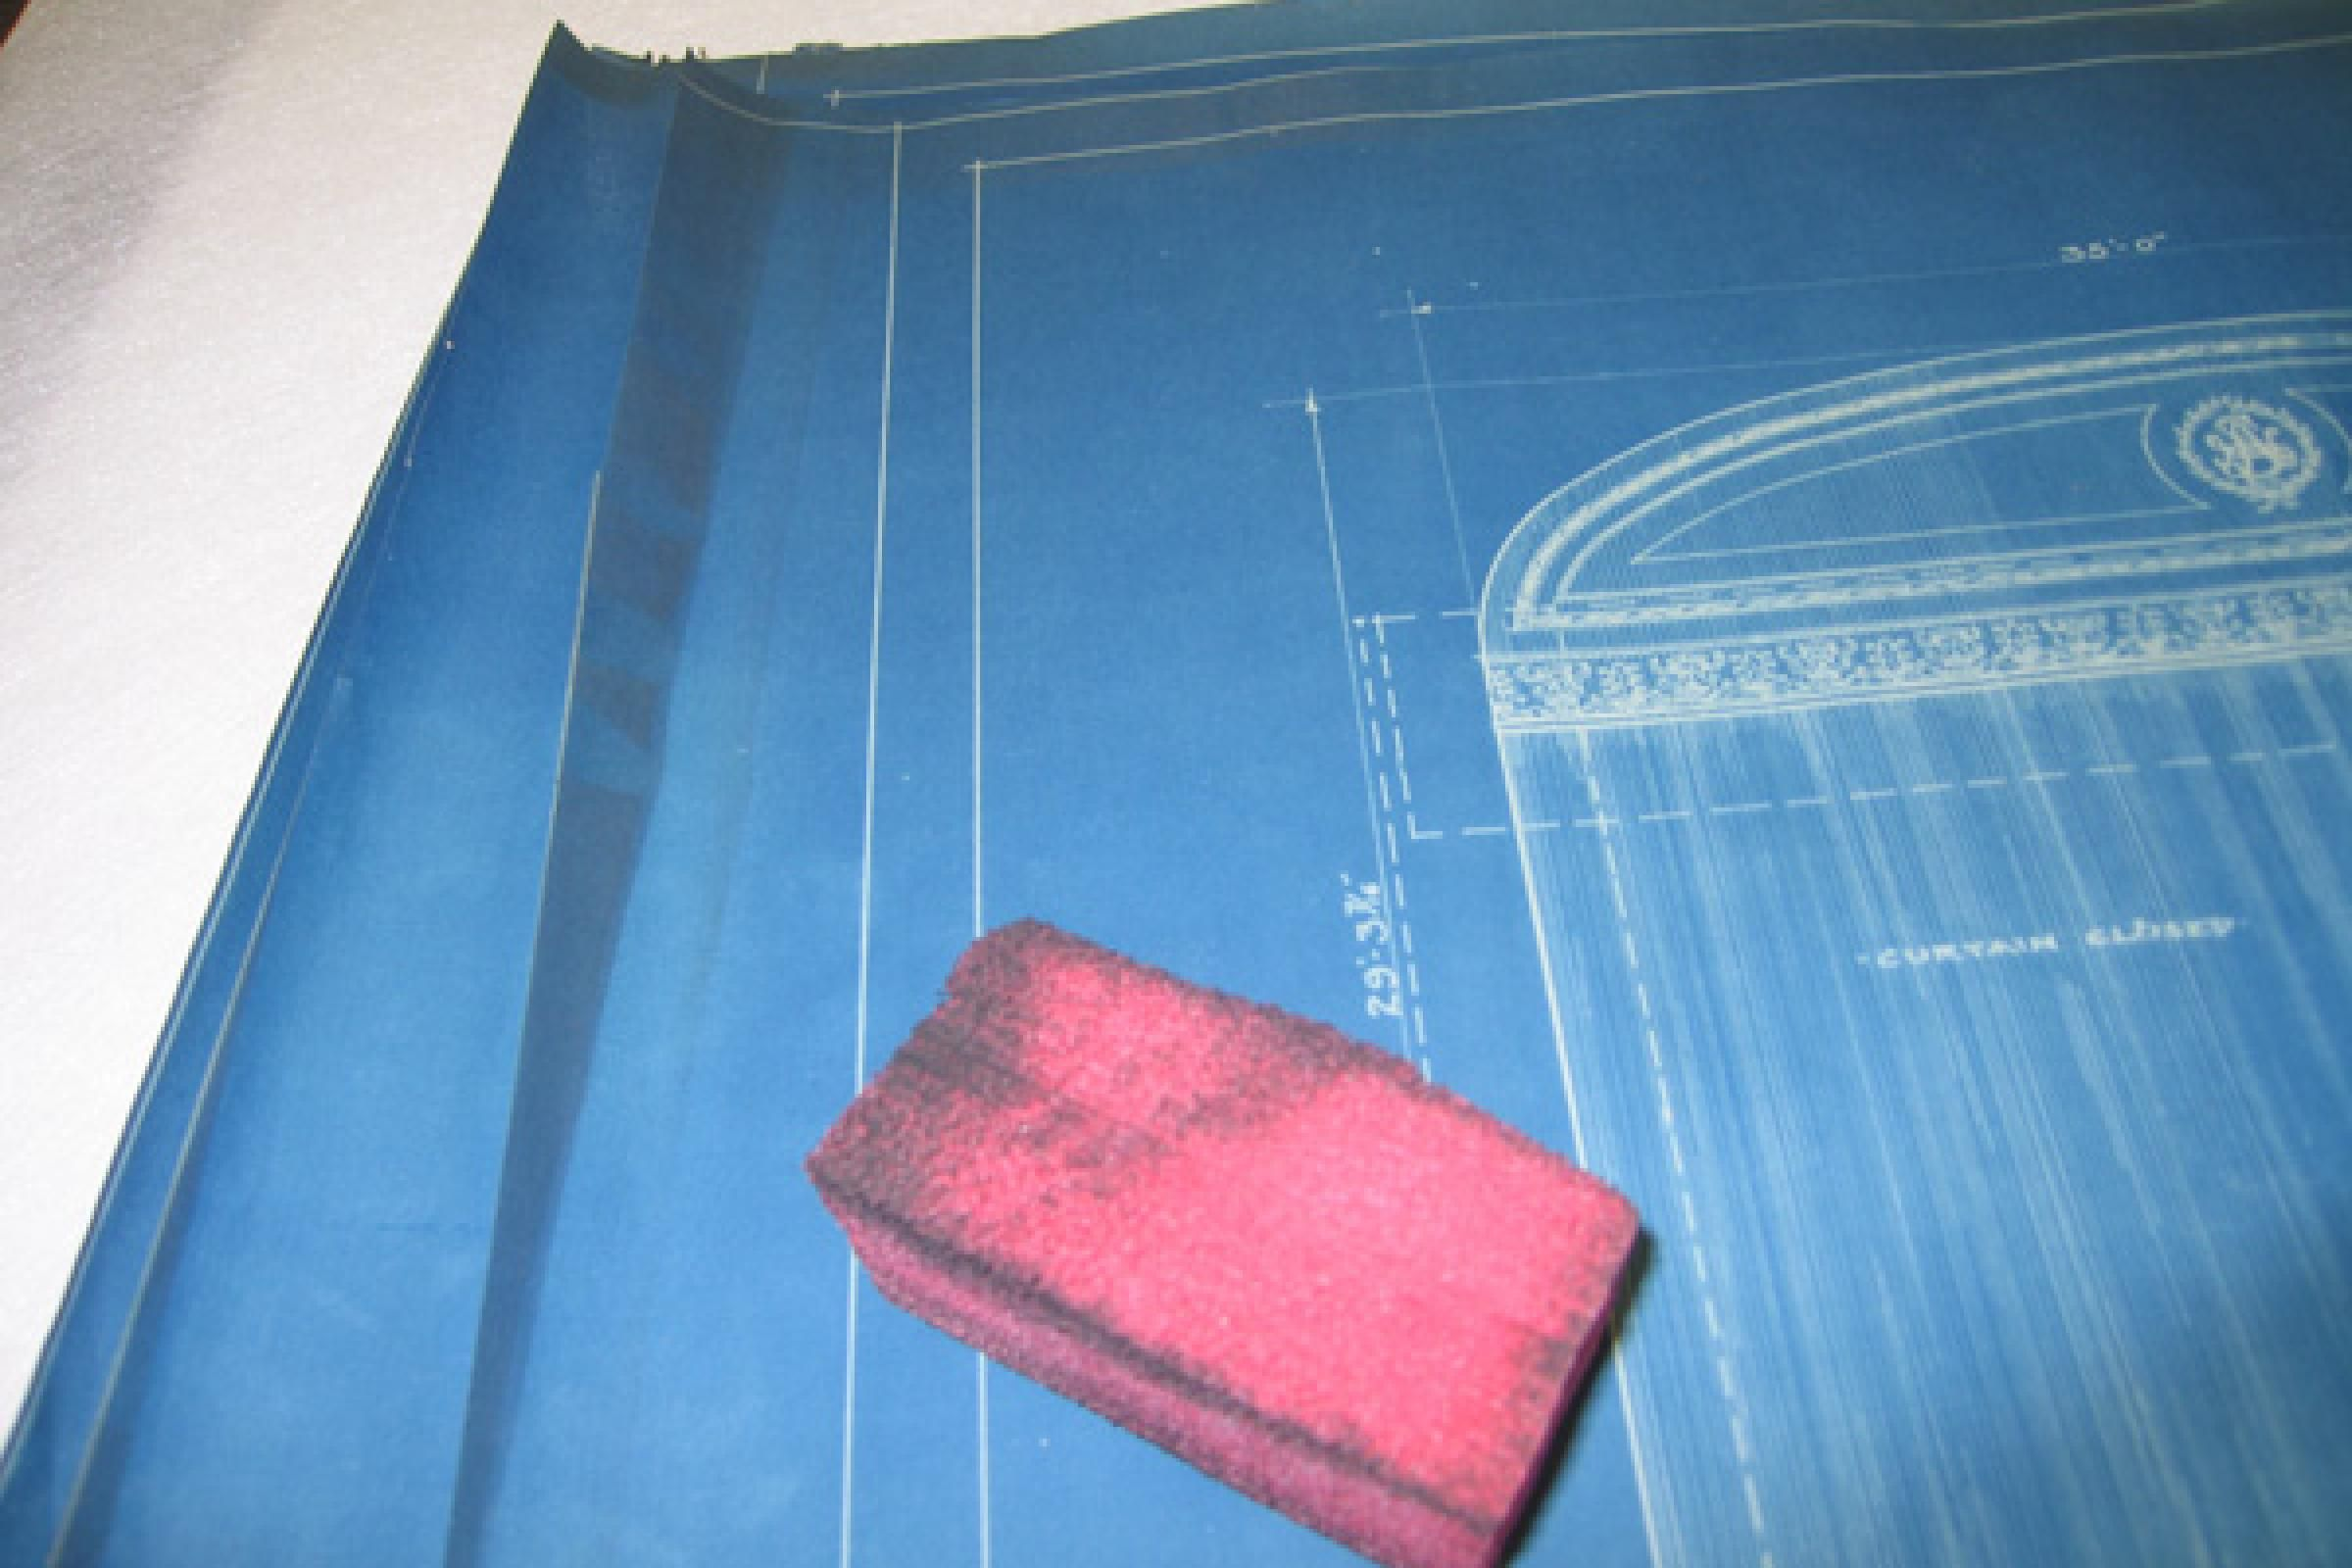 Smoke sponge and partially-cleaned blueprint